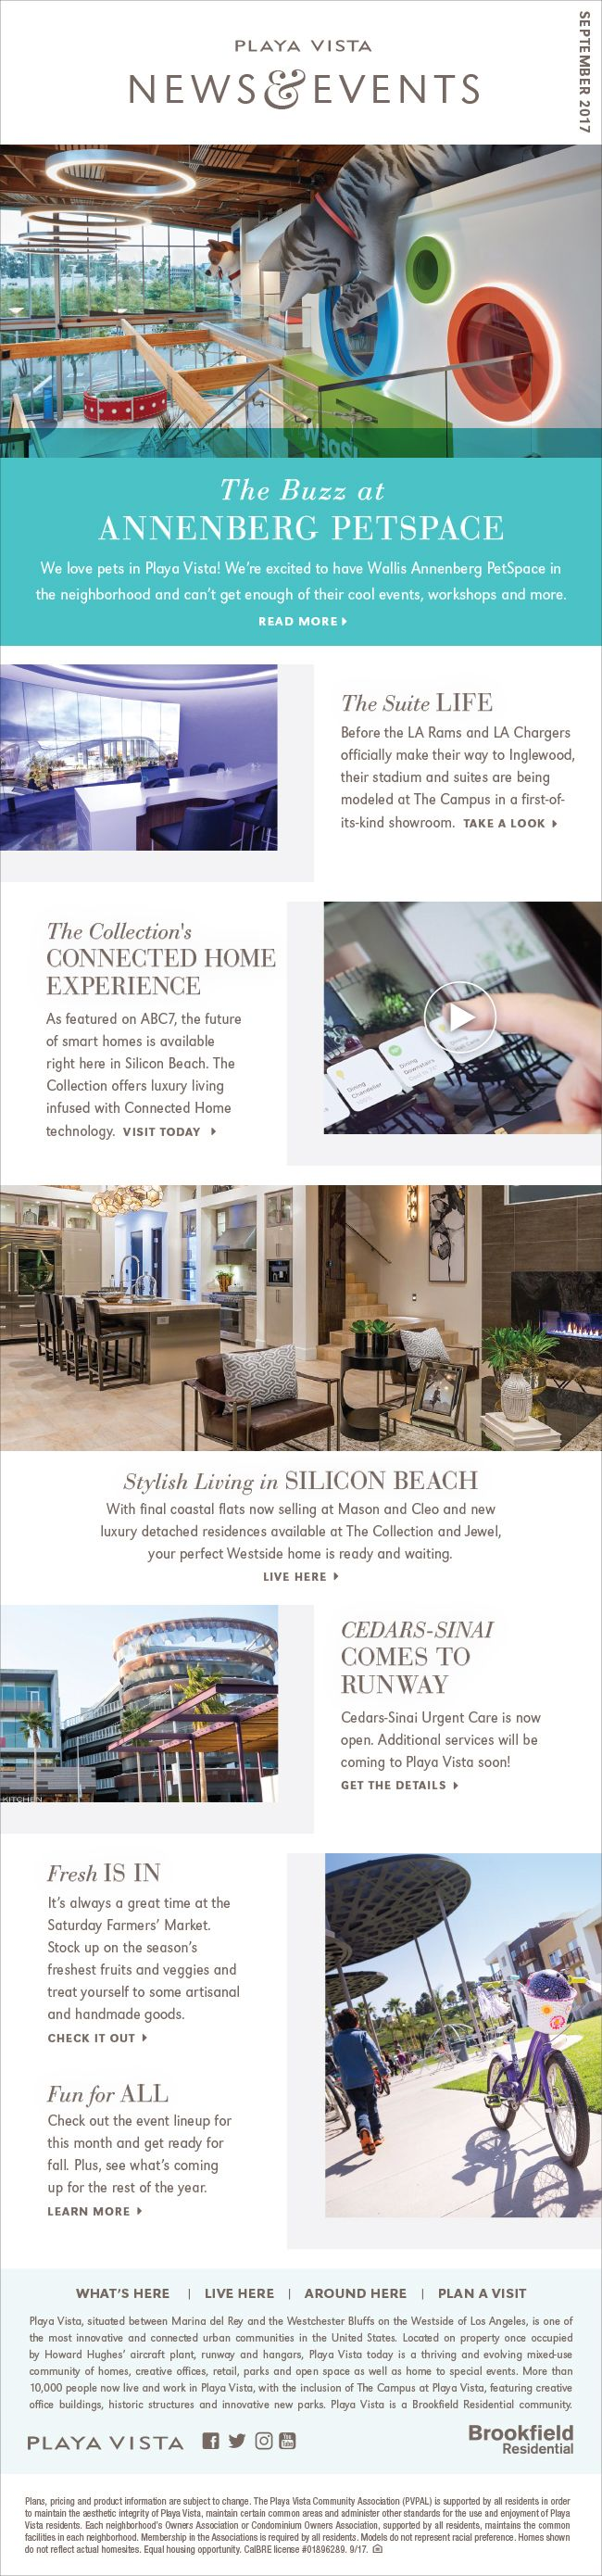 New Homes for Sale in Playa Vista, California  Playa Vista September News & Events  Visit these Sophisticated and Luxurious Homes      You can walk or bike to shopping, dining, and entertainment!     Catch a Ride on the Daily Shuttle     Google is  at The Campus in Playa Vista  http://playavista.com/